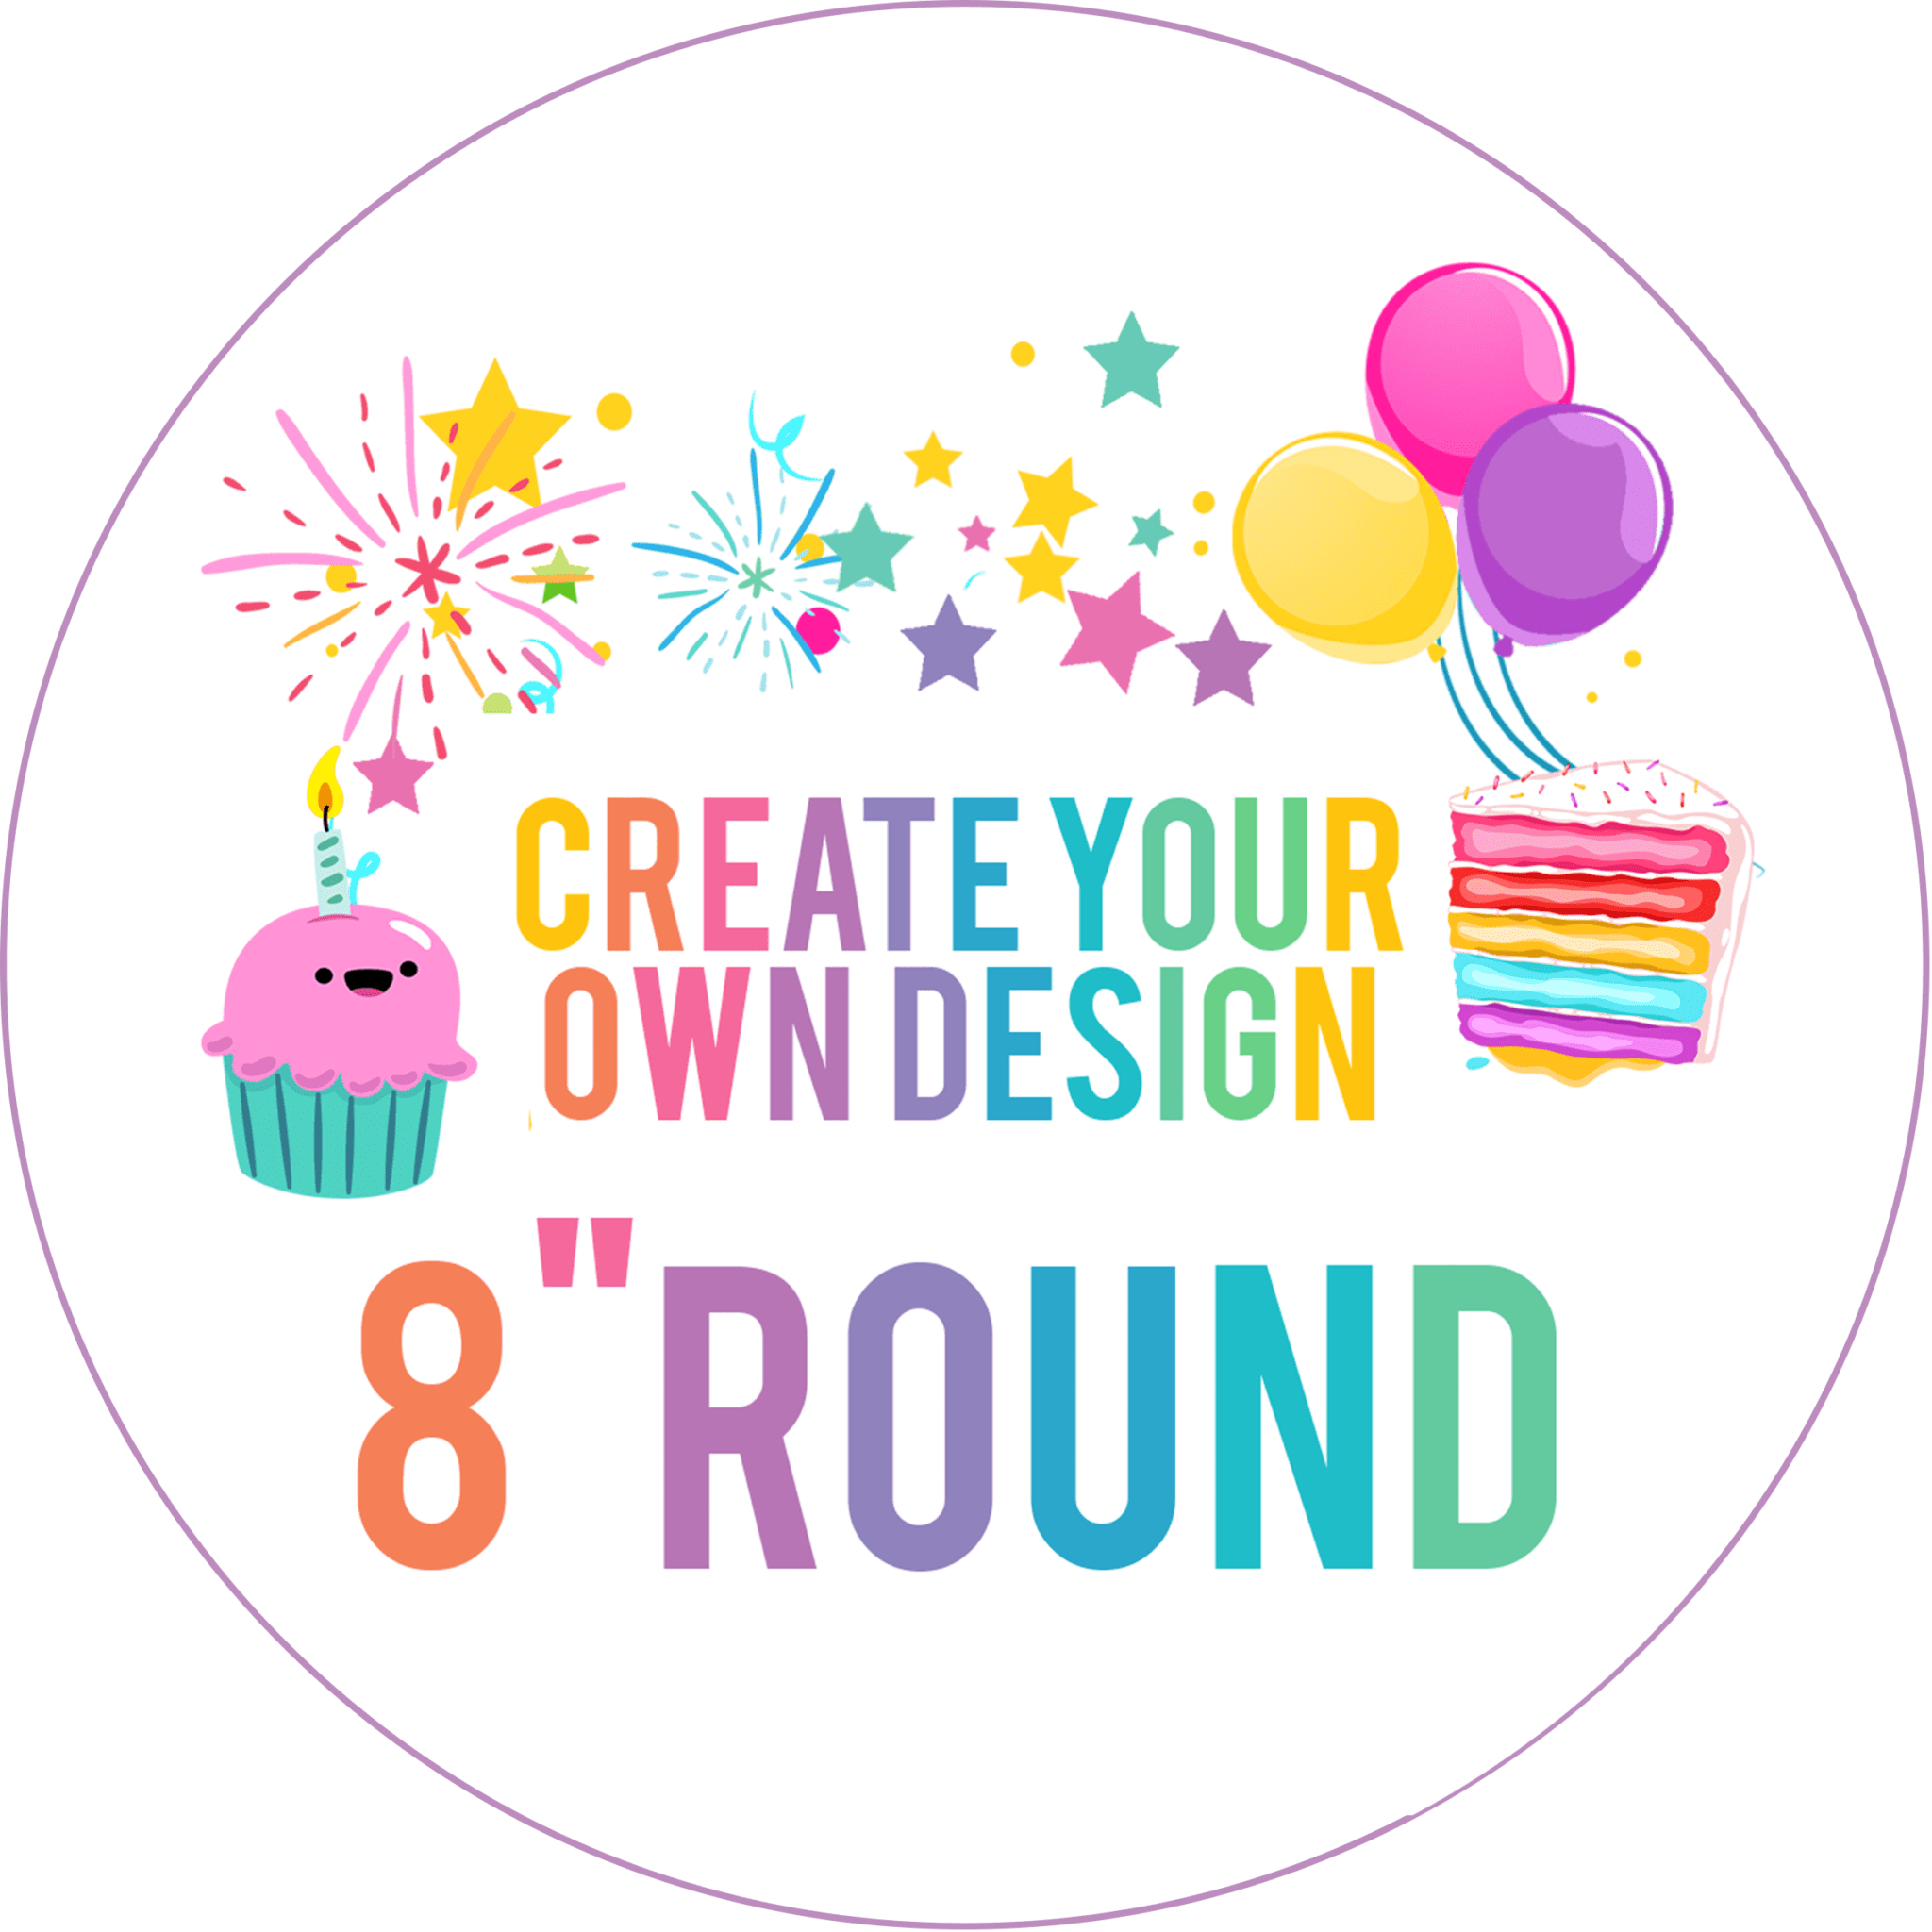 Design Your Own 8 Round Edible Cake Topper Online Design App